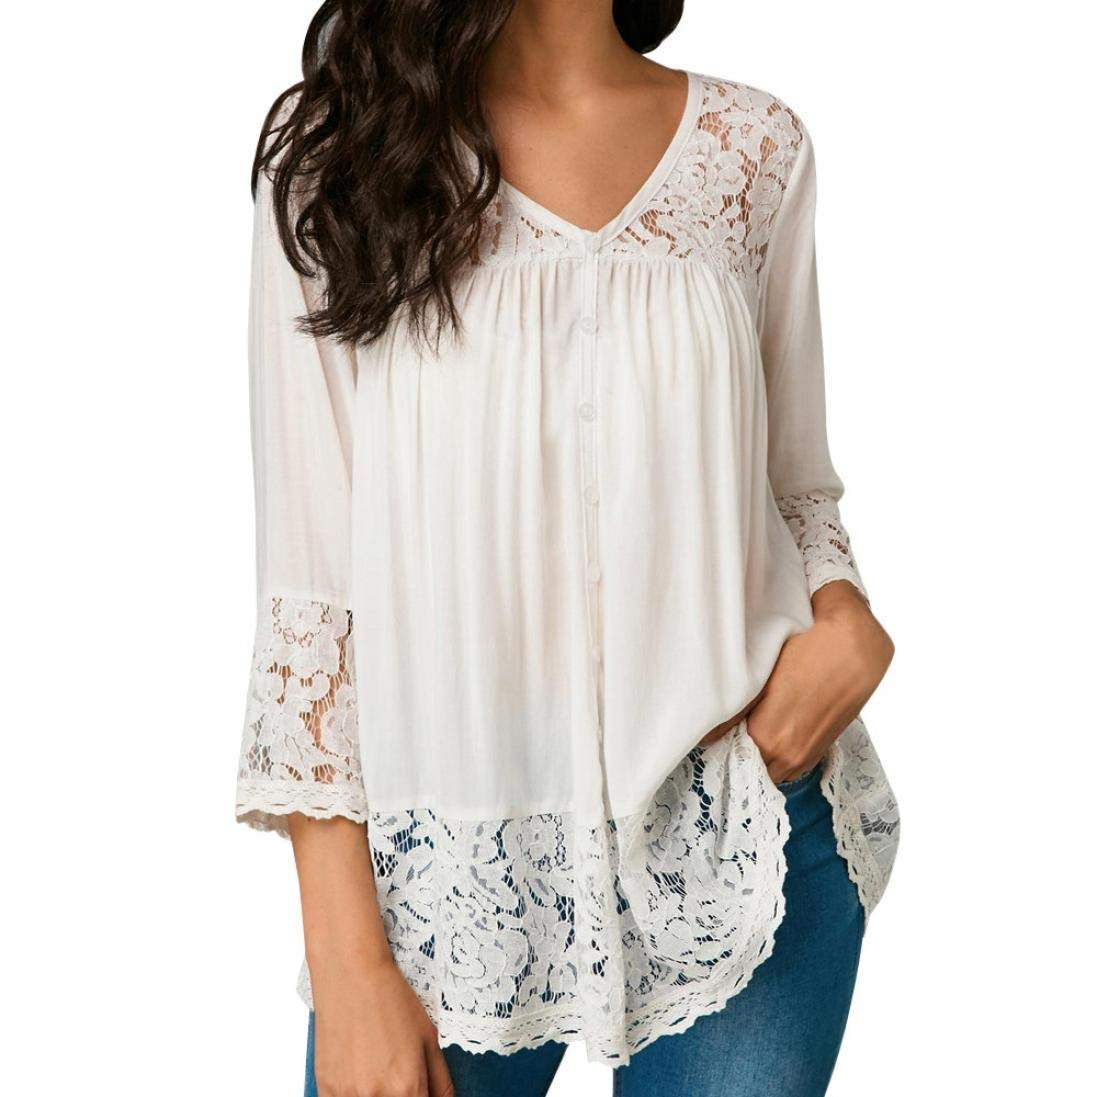 Clearance! Kshion Women Fashion Three Quarter Sleeve Chiffon Lace V Neck Solid Color Blouse T-Shirt (White, M)